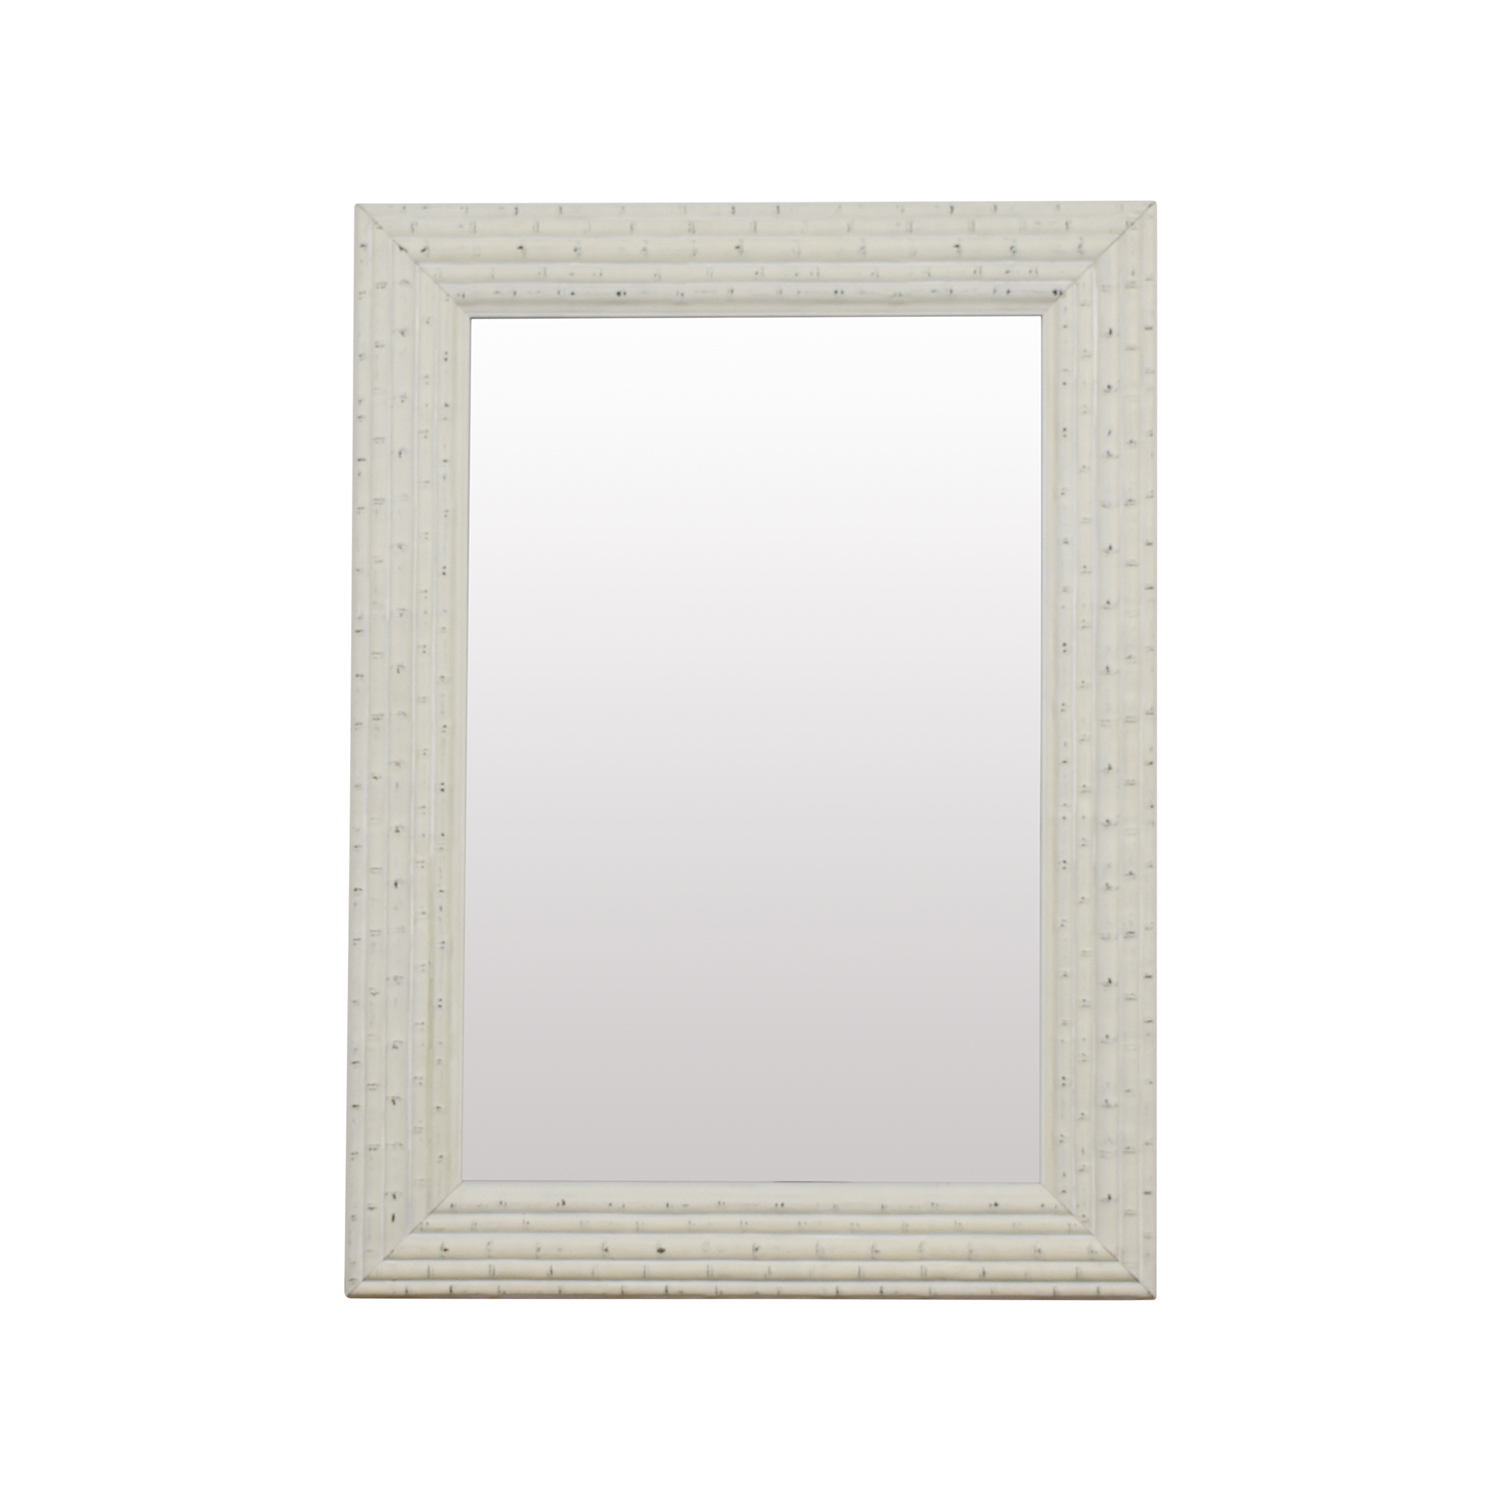 HomeGoods HomeGoods Large White Bamboo Mirror on sale